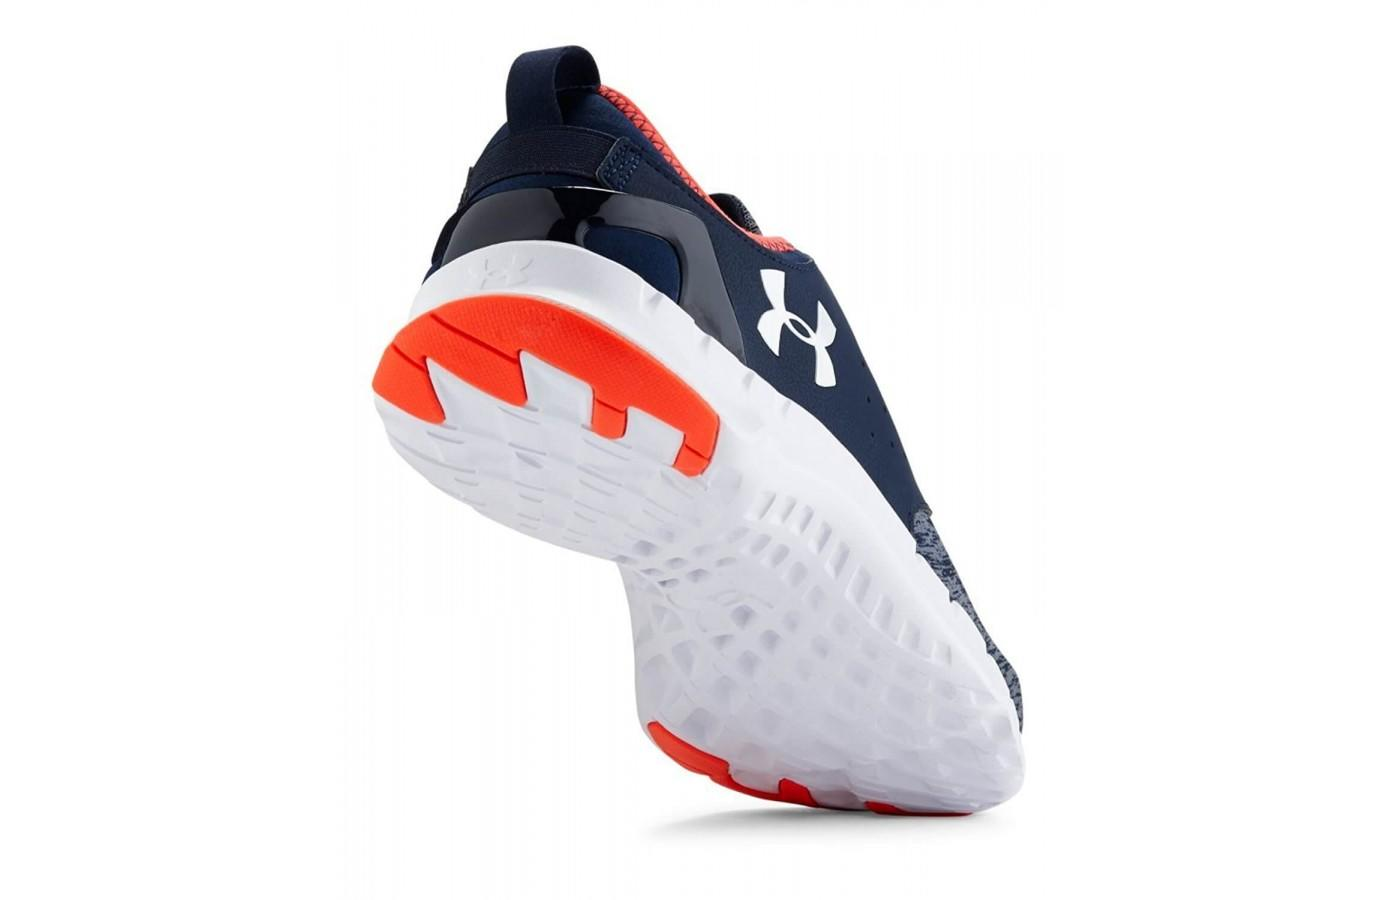 the outsole of the Under Armour Flow Twist features traction at high-abrasion areas to minimize wear and tear